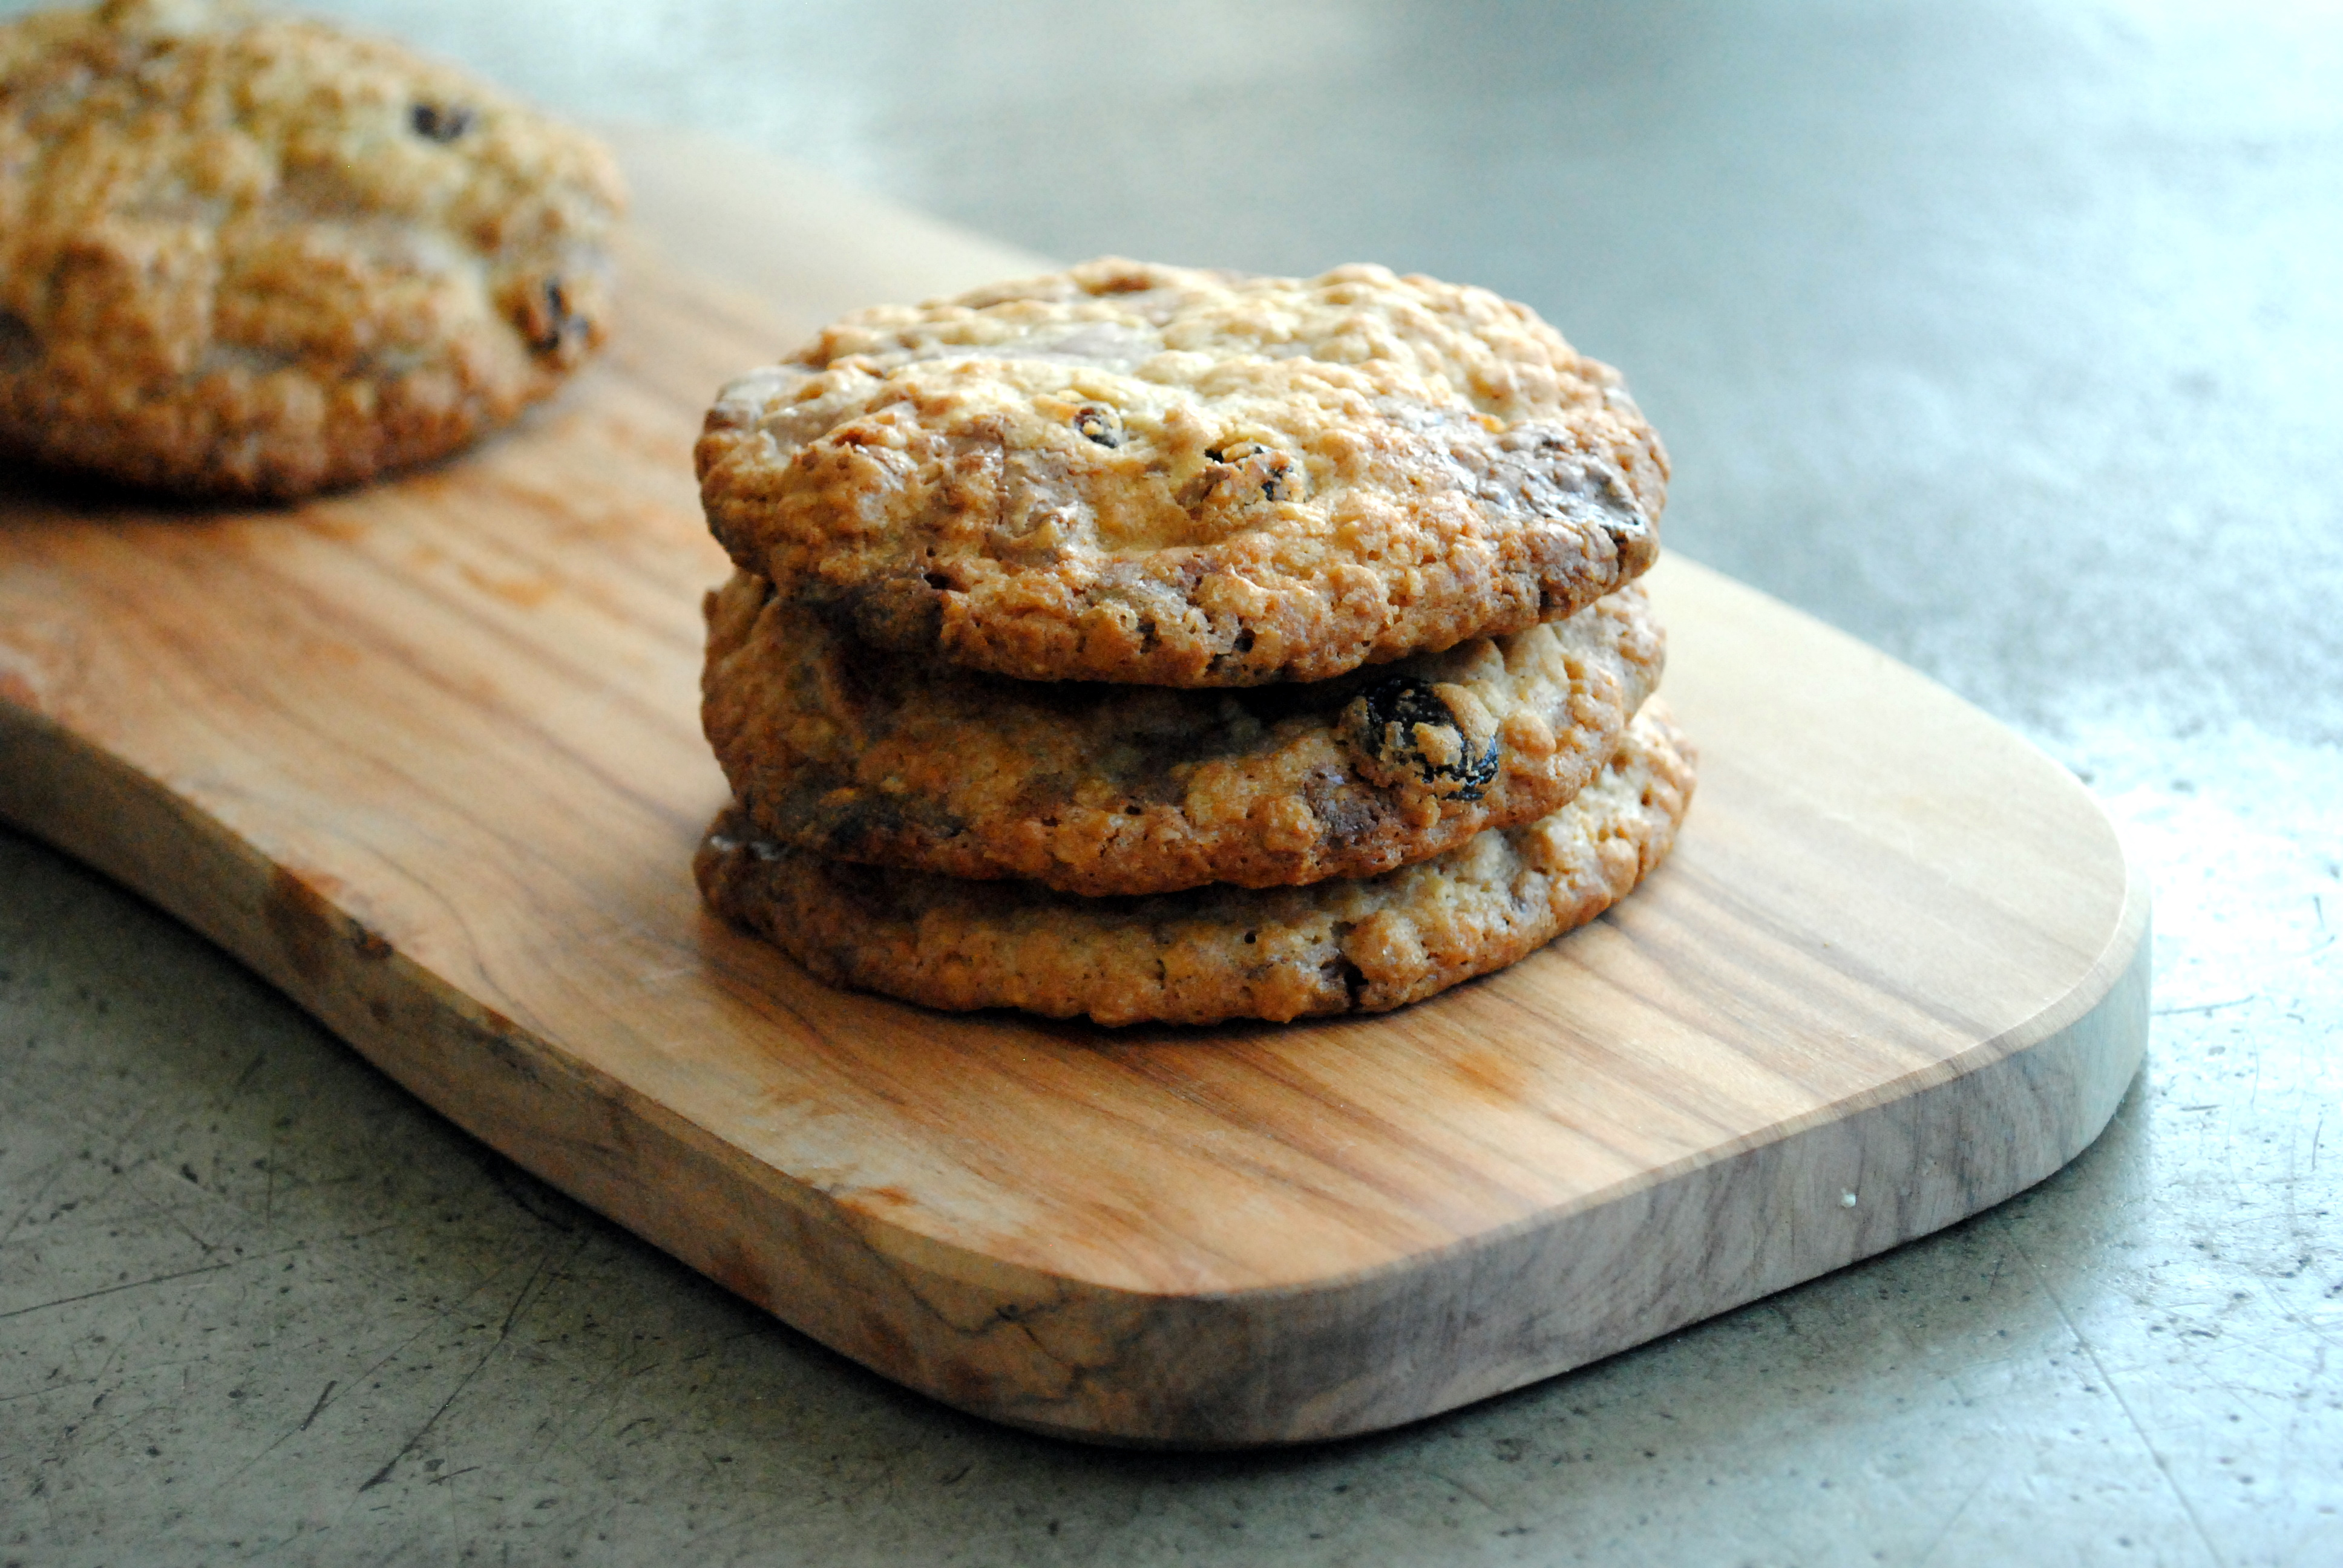 Oatmeal cookies with raisins and milk chocolate